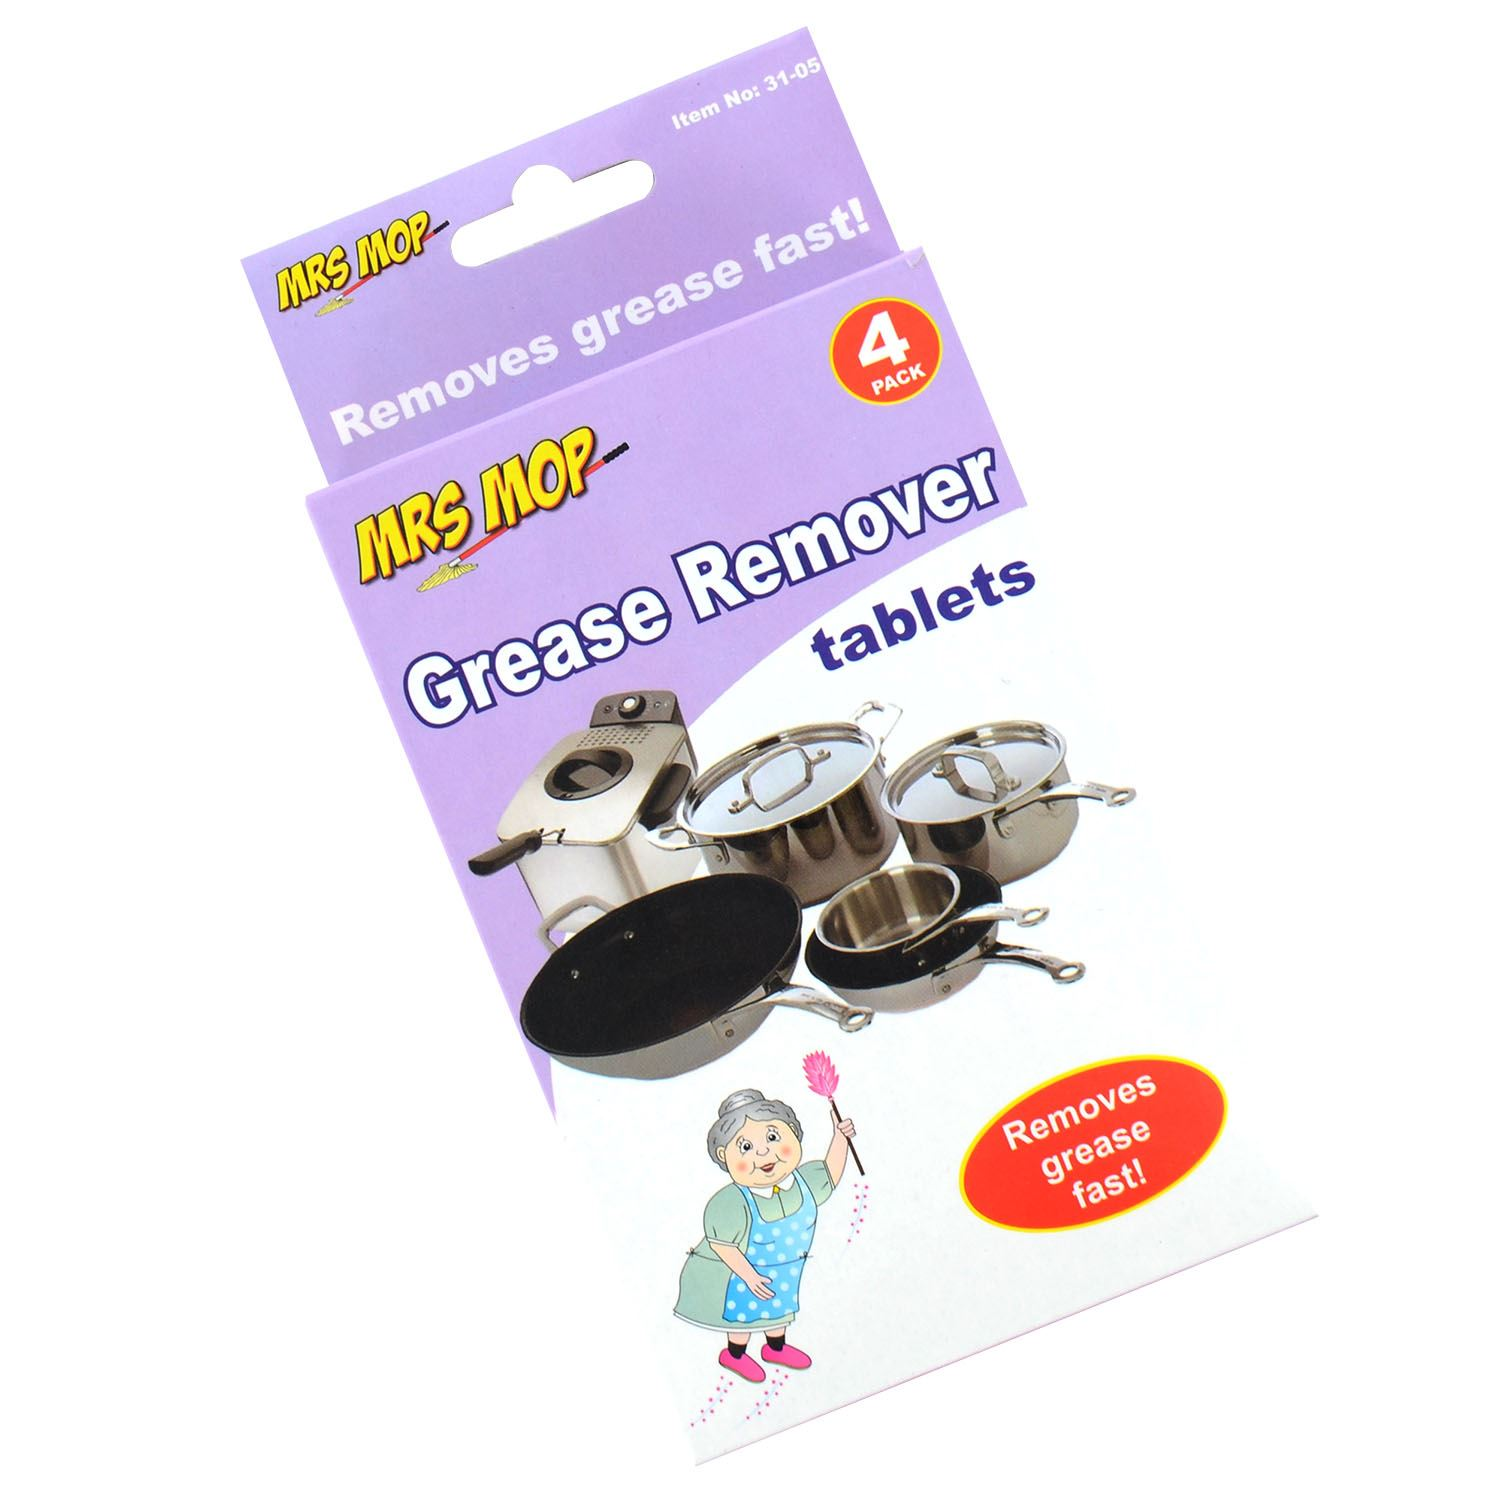 Kitchen Pan Fryer Grease Remover Tablets Degreaser Cleaner Cleaning Ebay